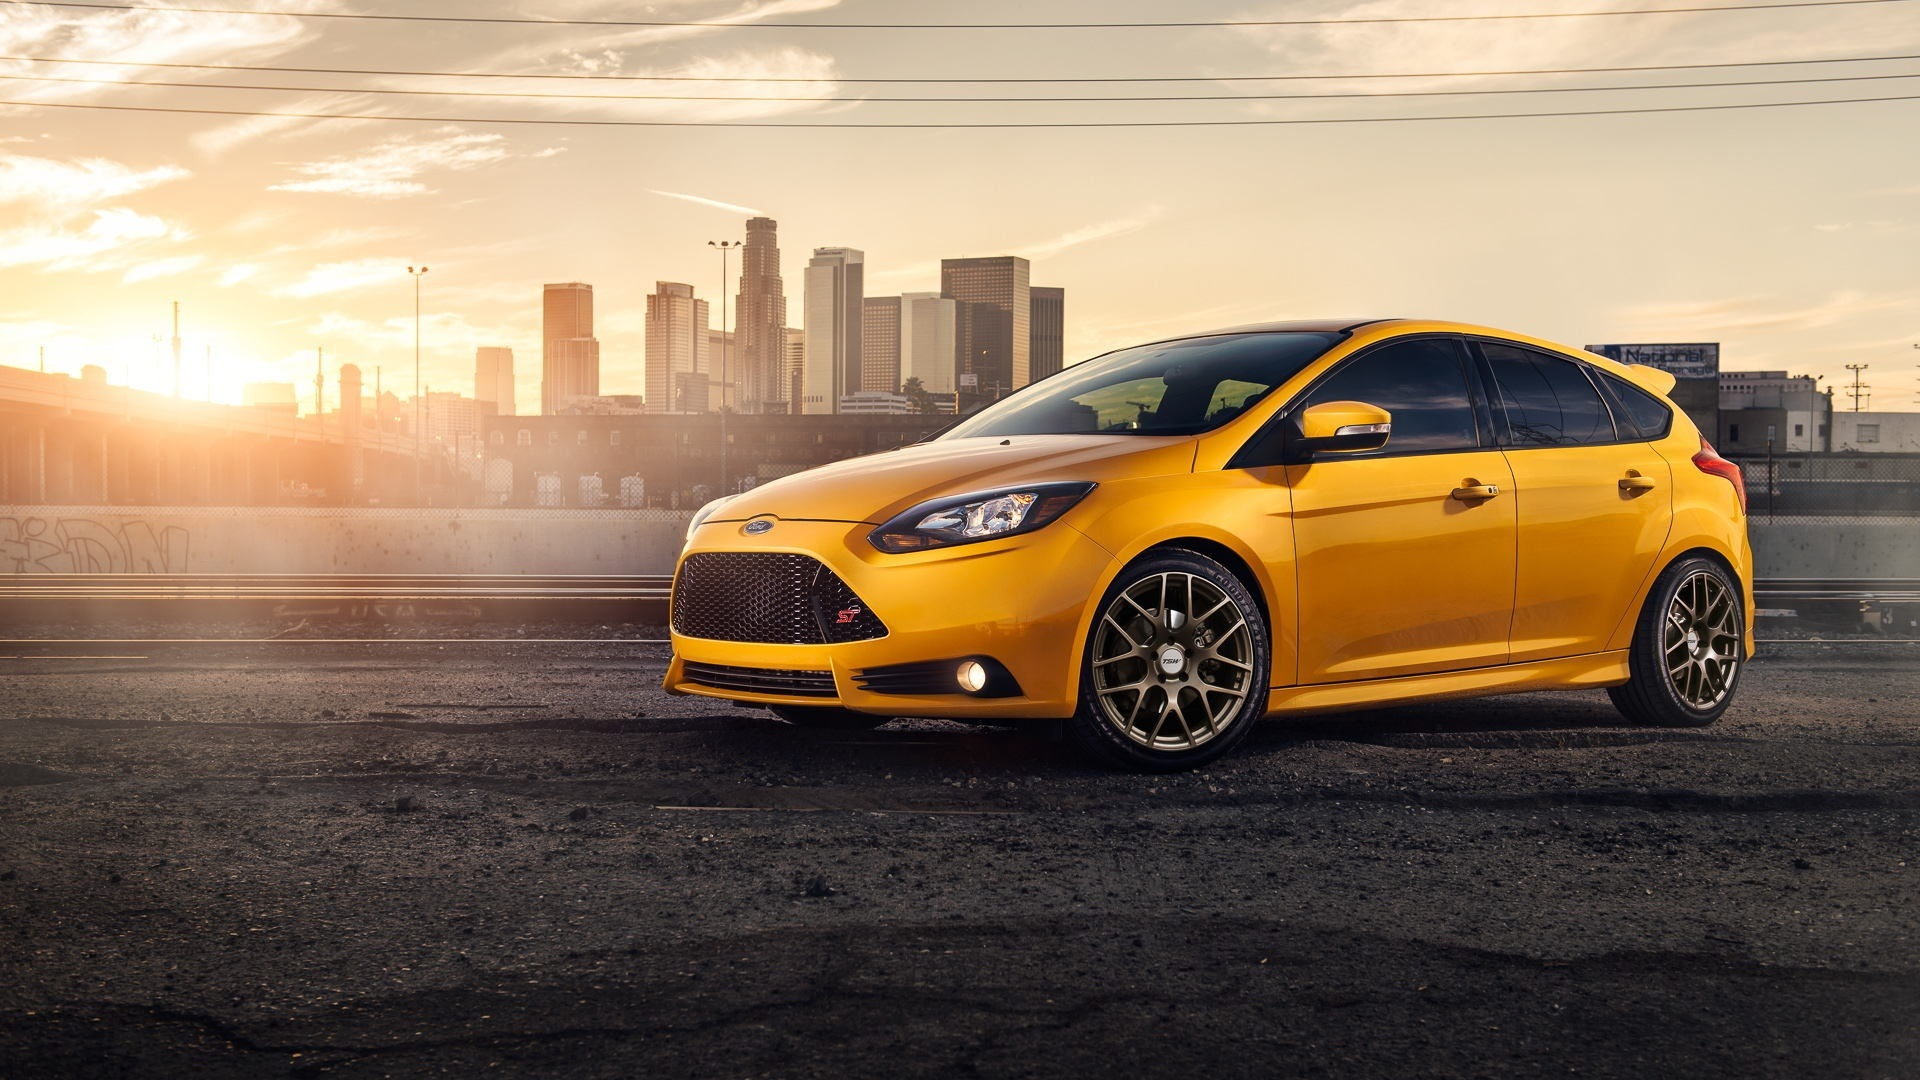 Wallpaper Yellow Ford Focus St Car Side View 1920x1080 Full